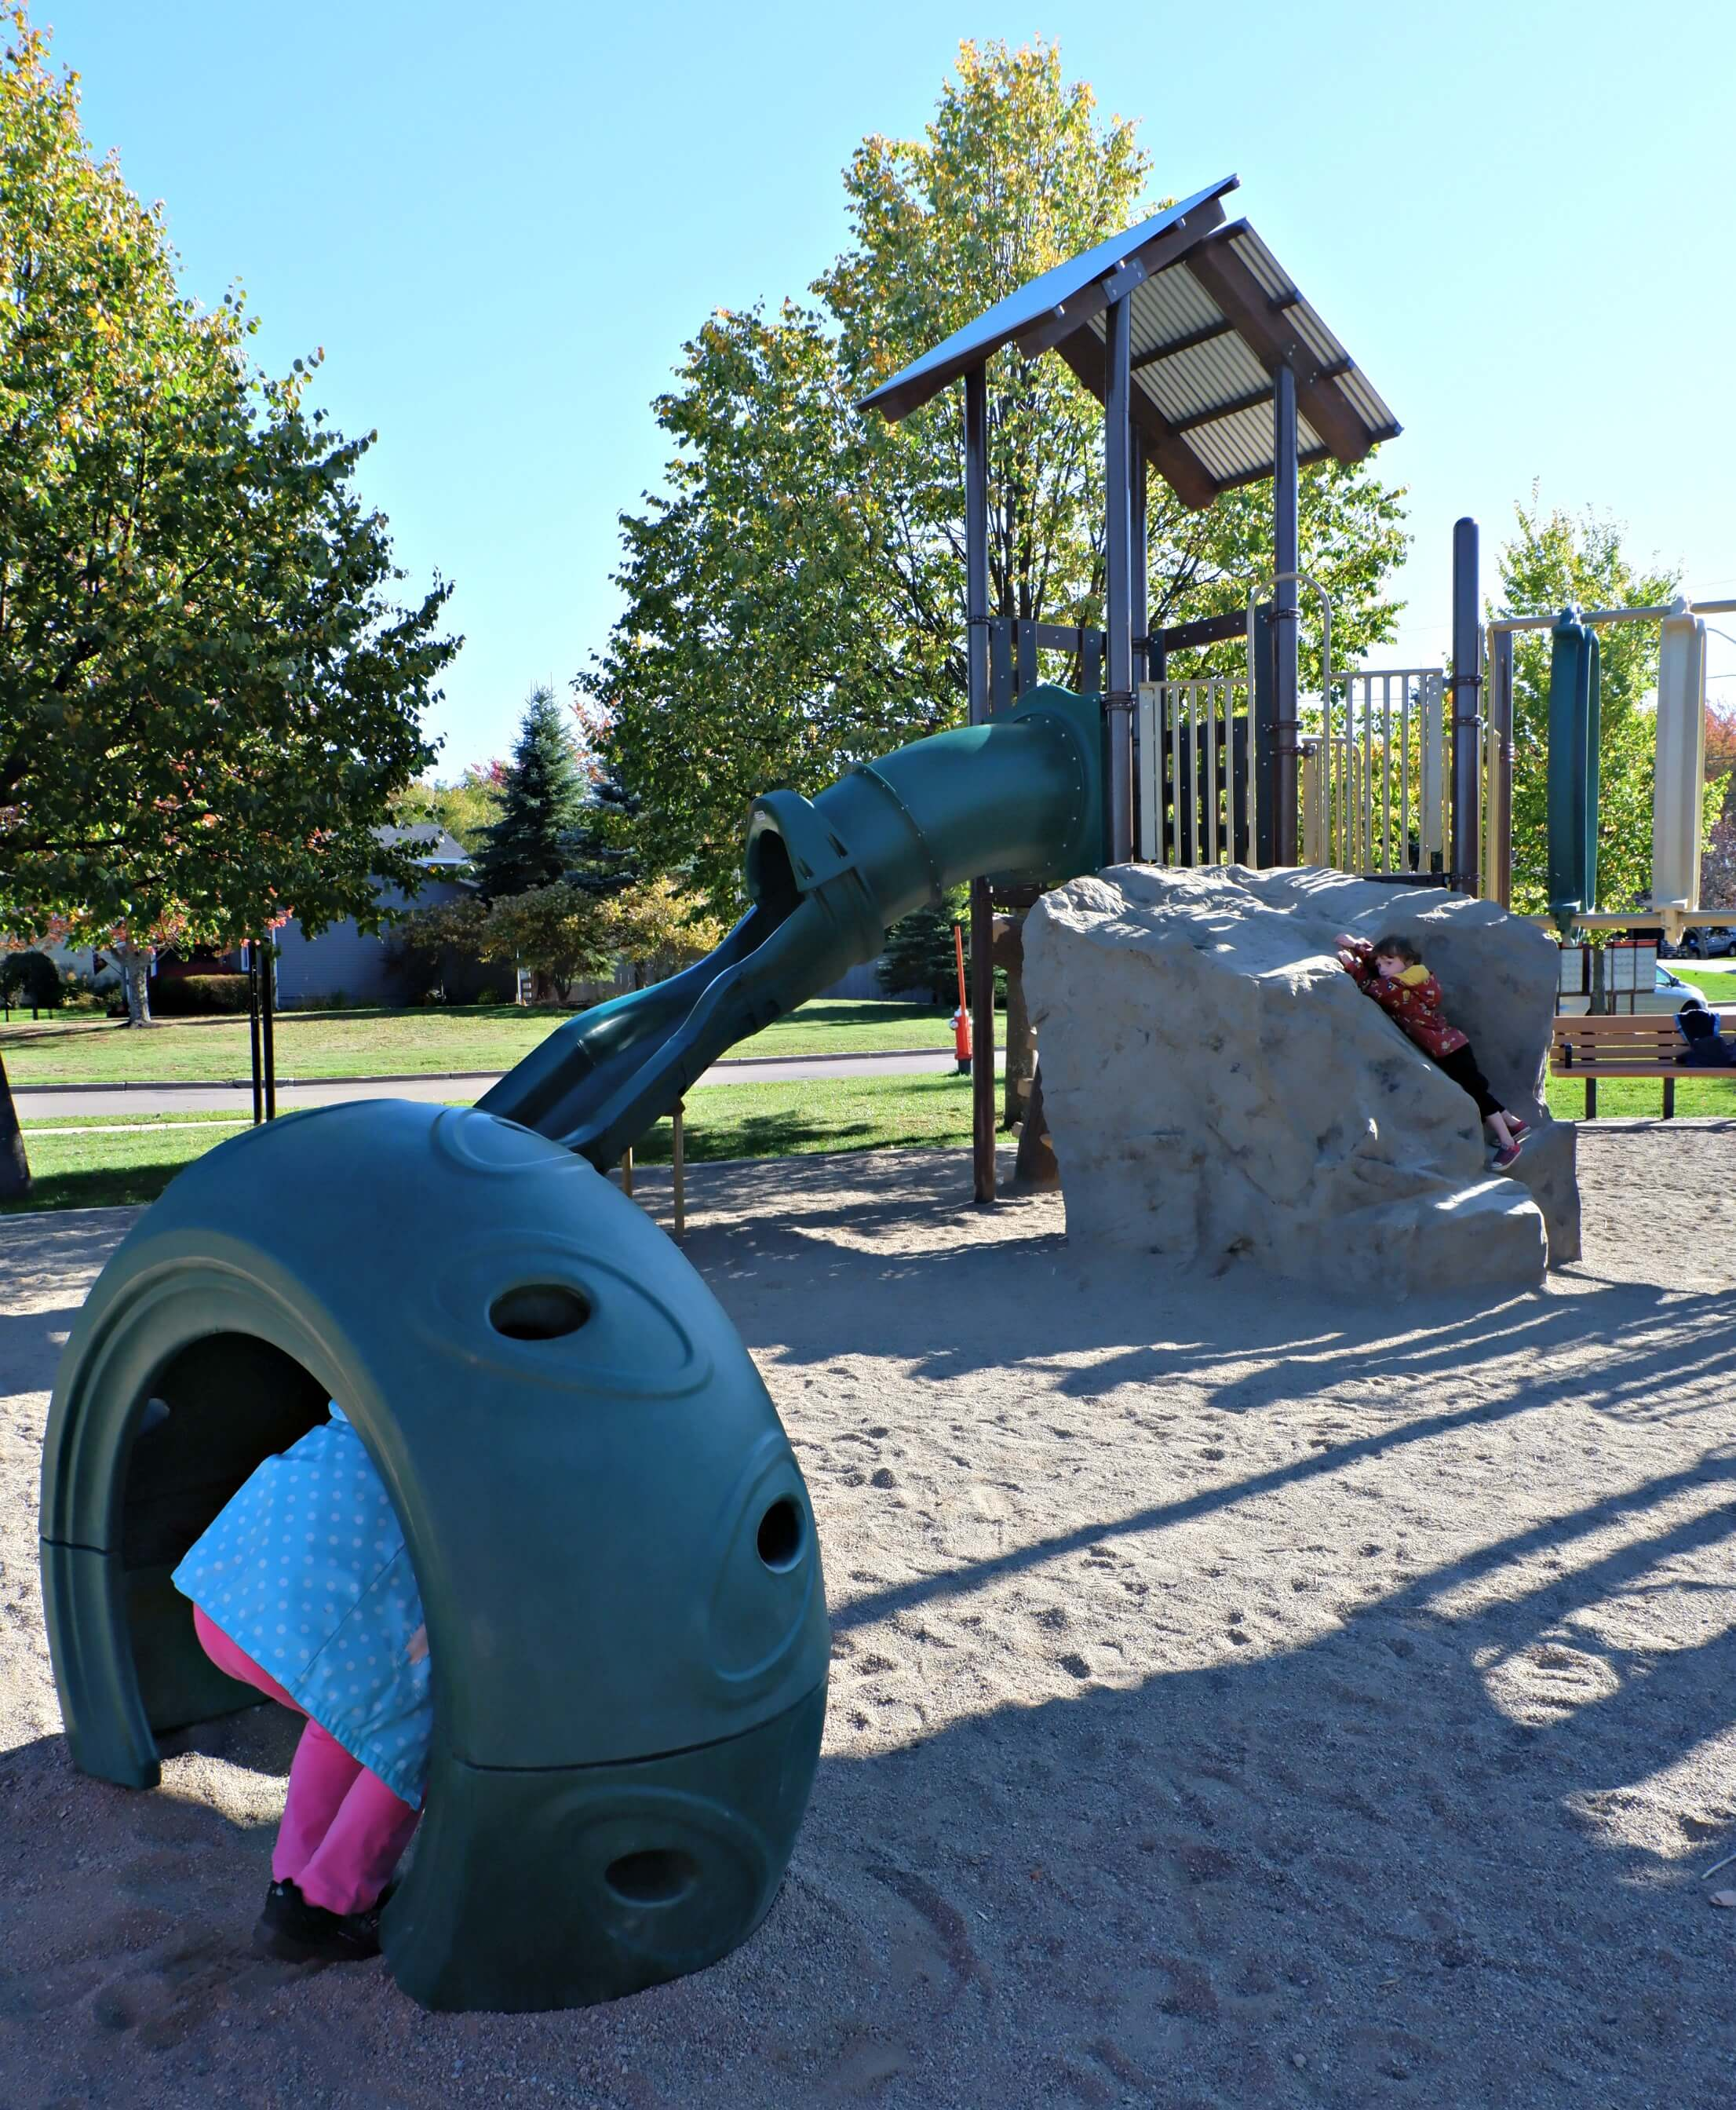 maplehurst park playground moncton riverview dieppe best play new brunswick play